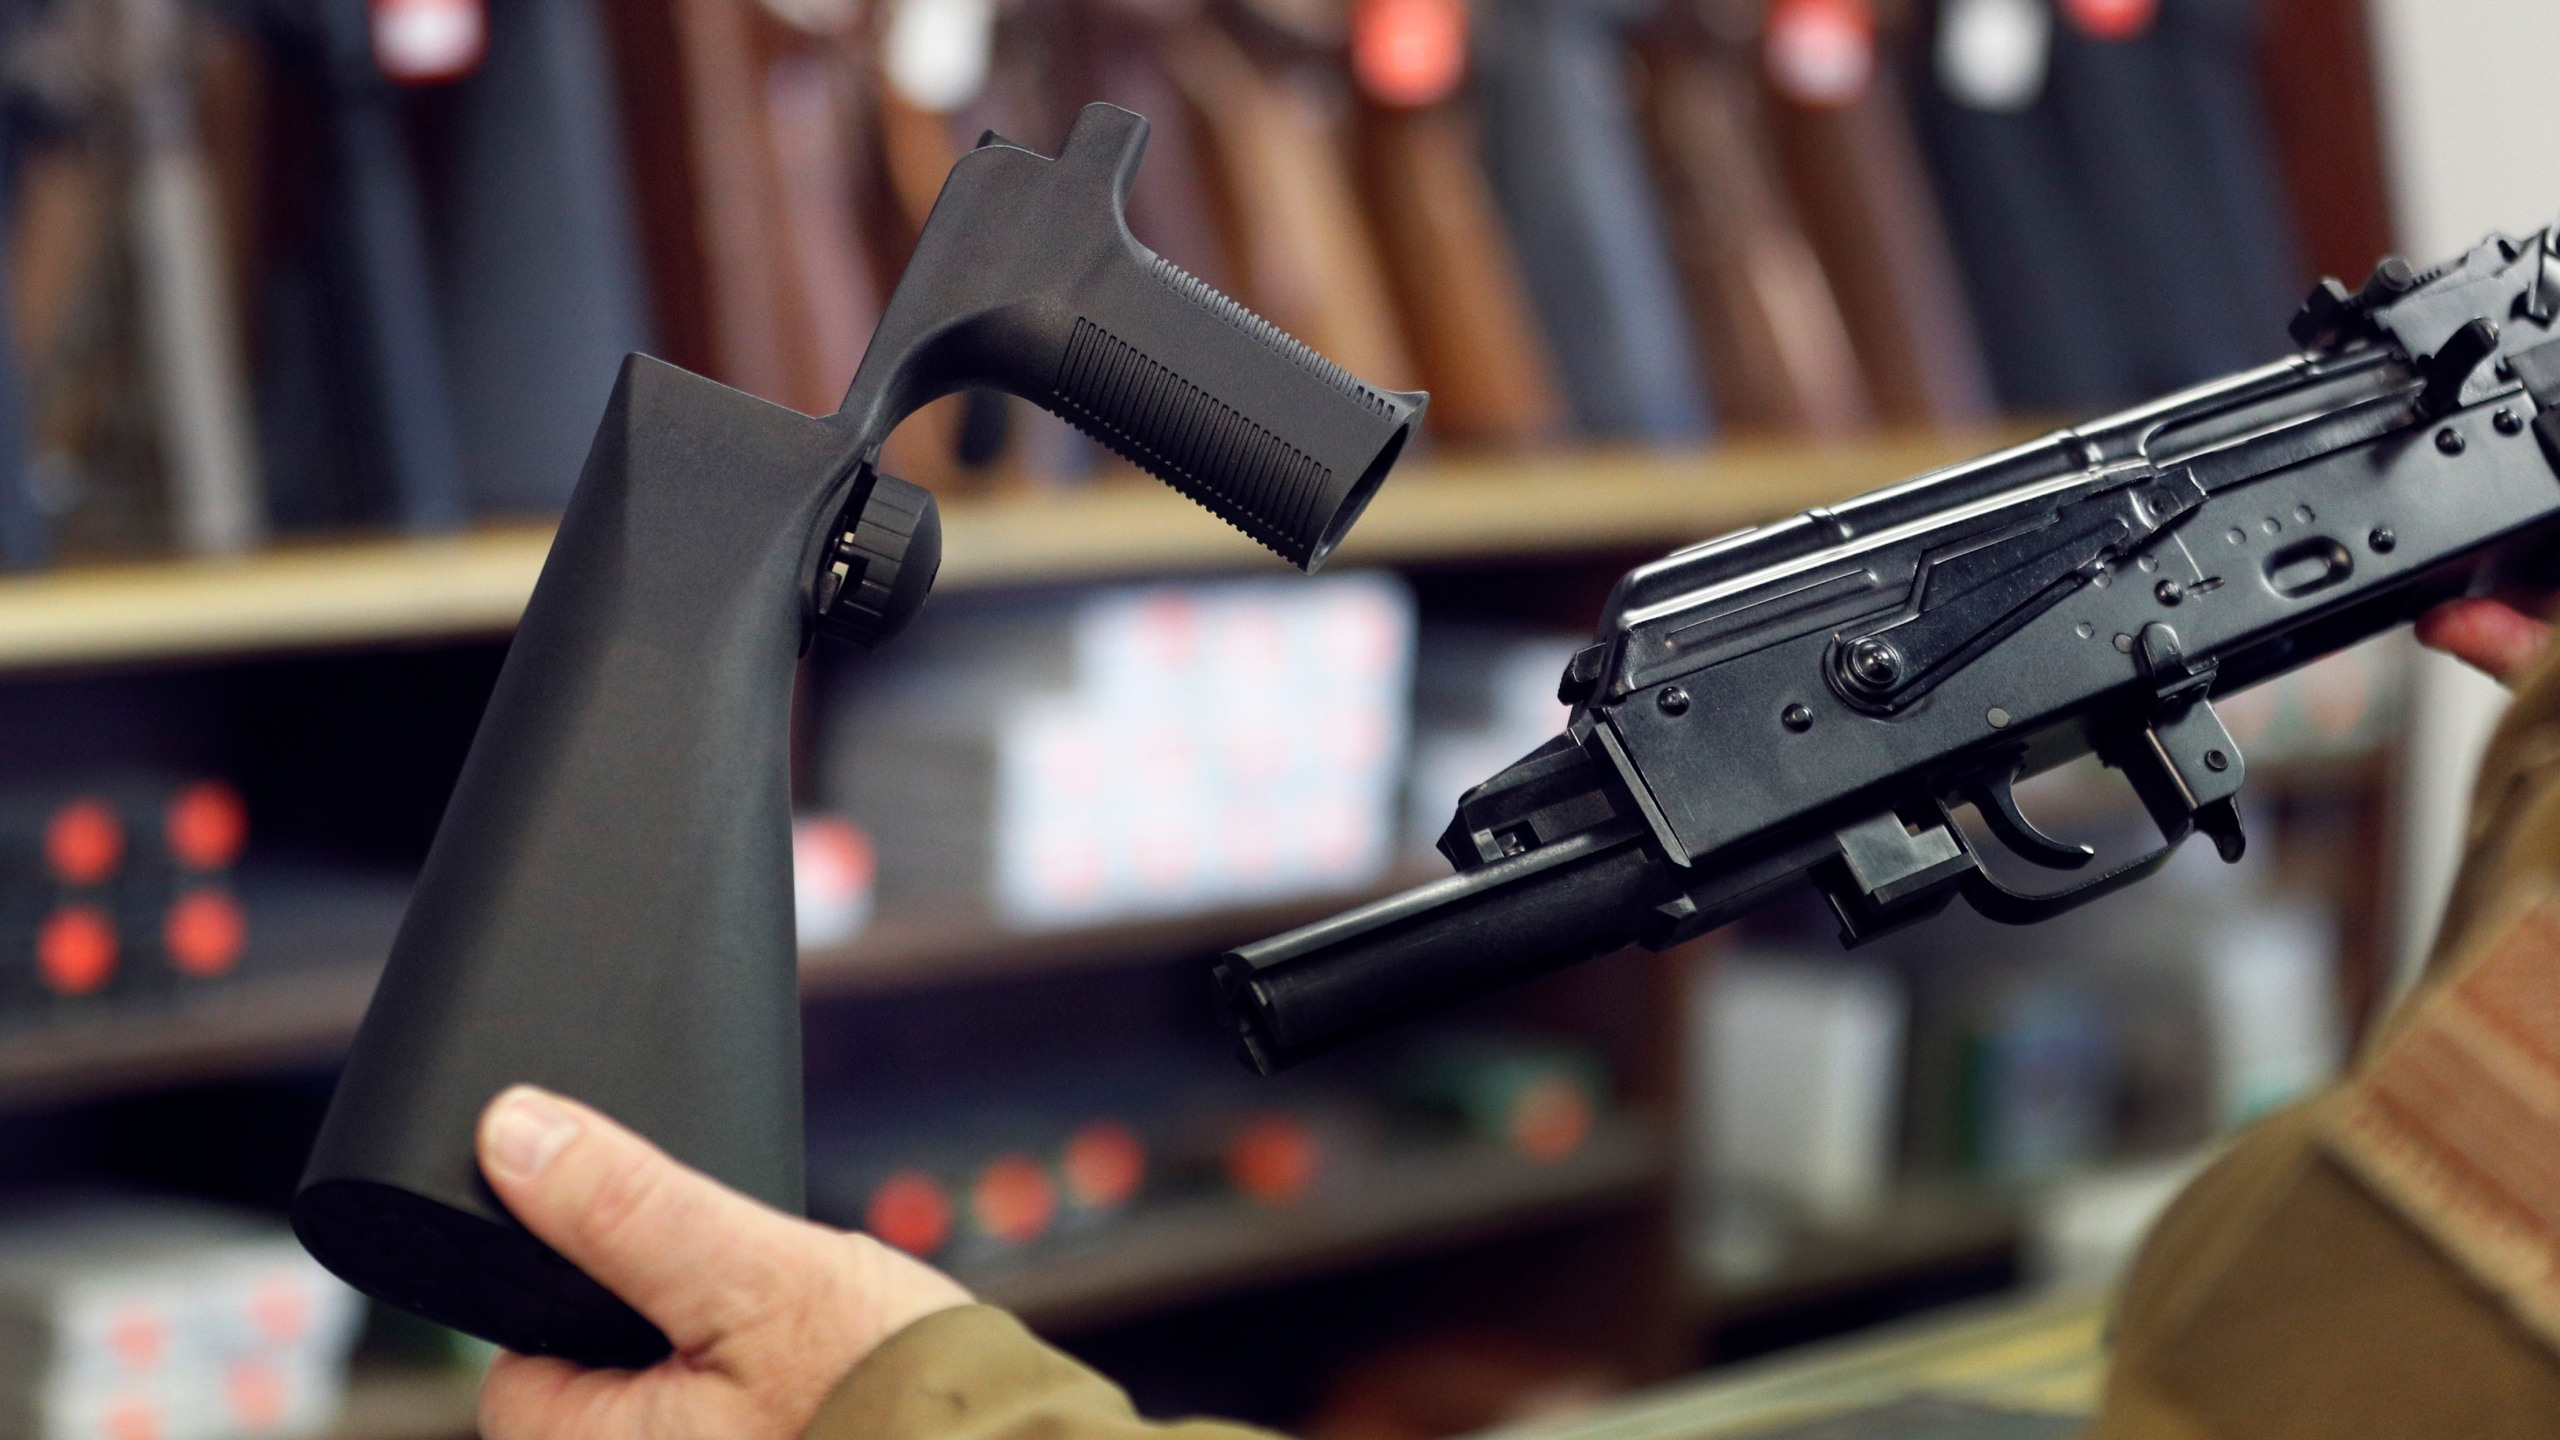 A bump stock device (left), is shown next to a AK-47 semi-automatic rifle (right). (Credit: George Frey/Getty Images)